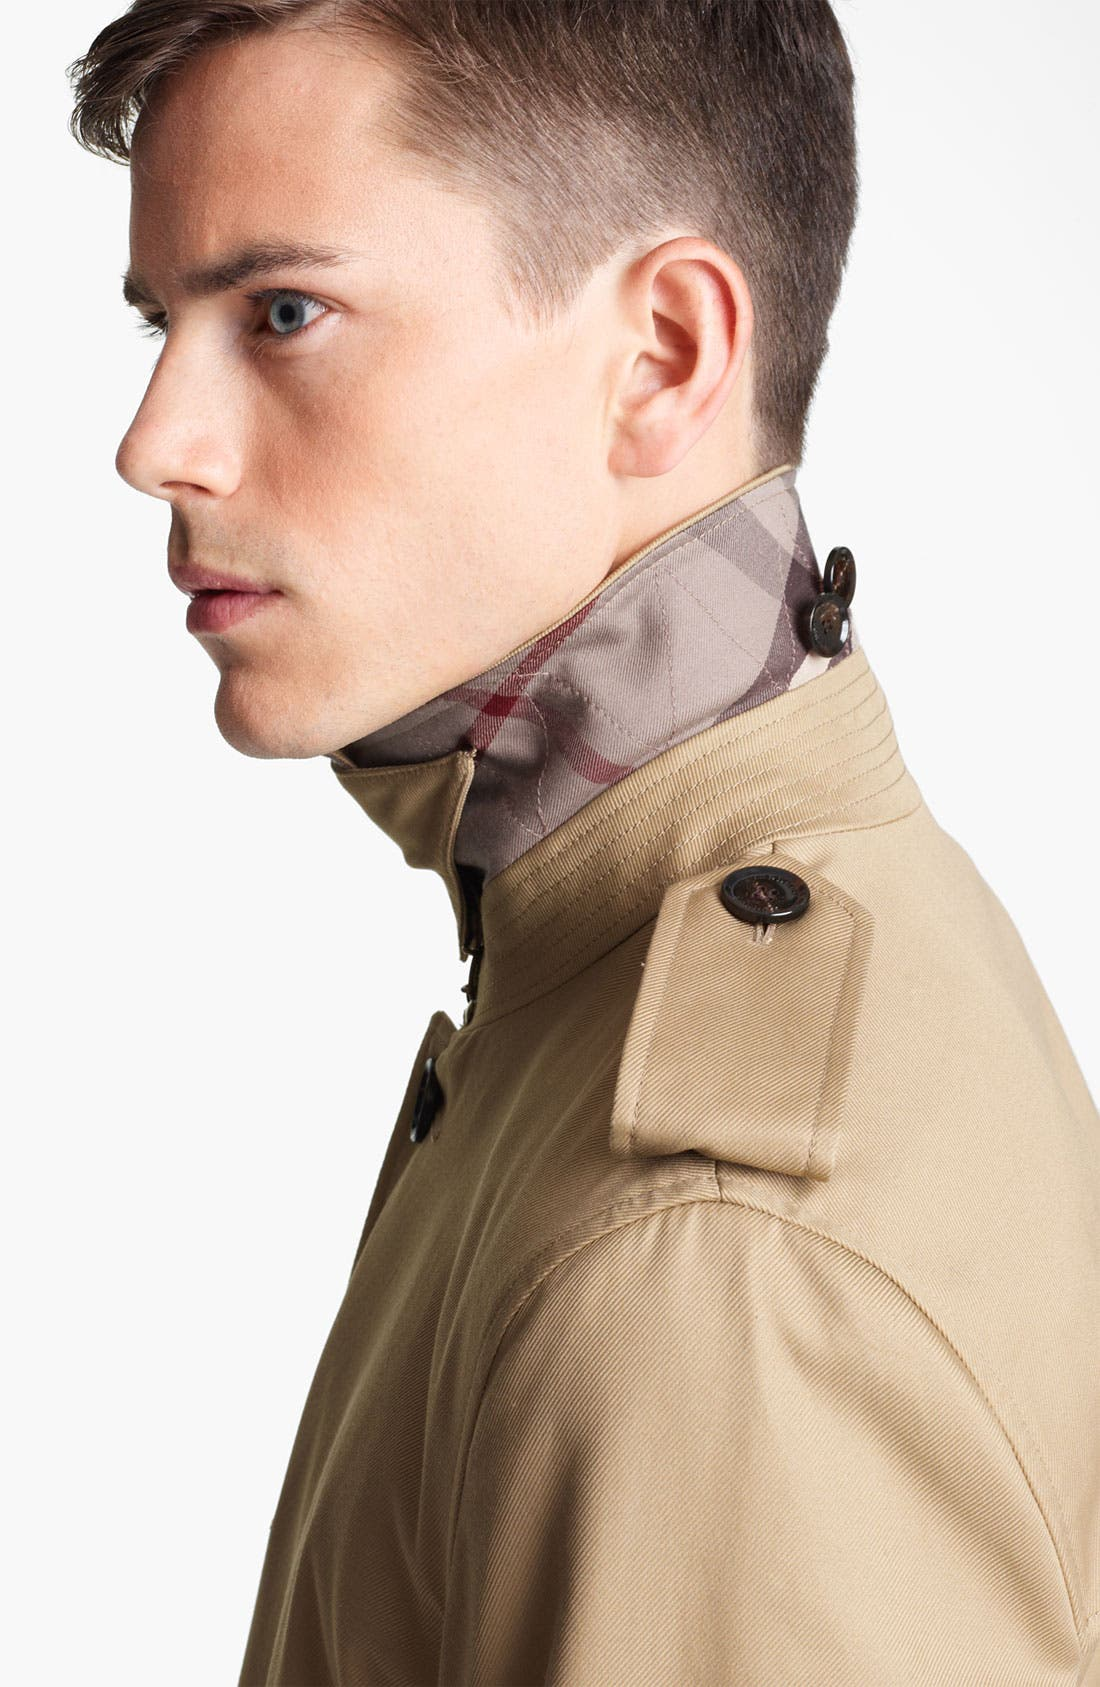 London 'Britton' Single Breasted Trench Coat,                             Alternate thumbnail 5, color,                             250